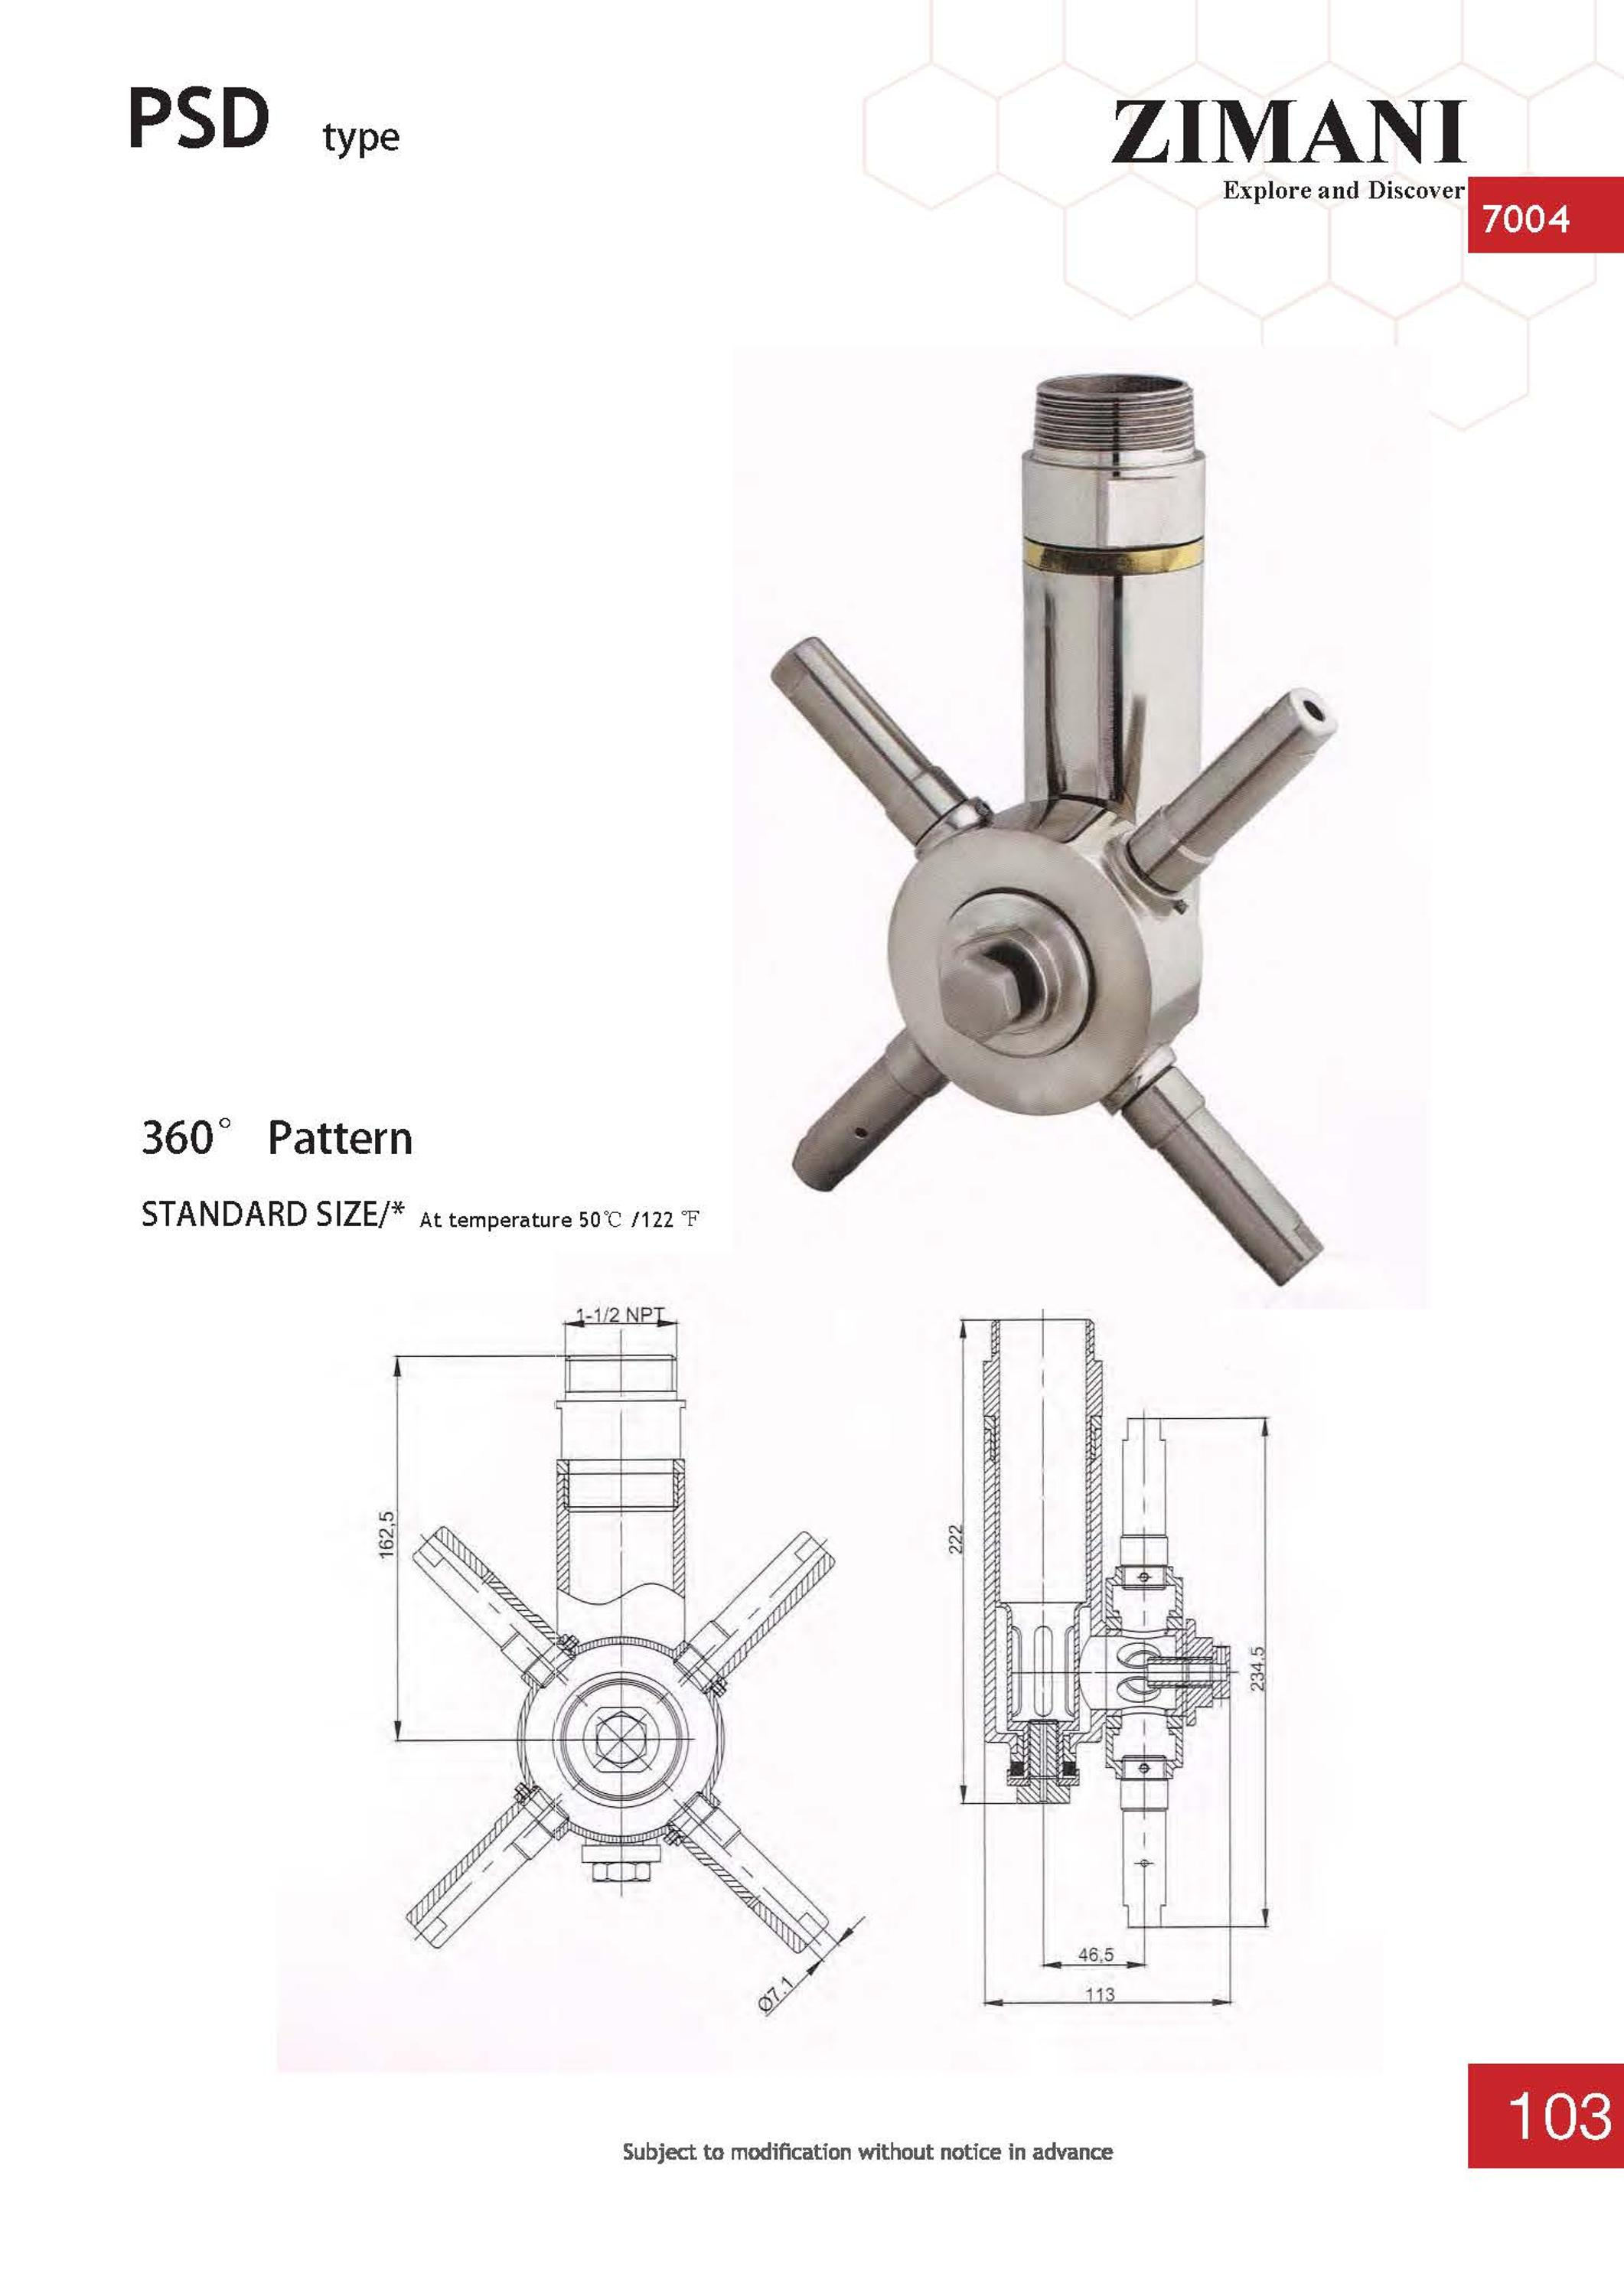 CIP 360 pattern sanitary stainless steel spray balls Tank Washer